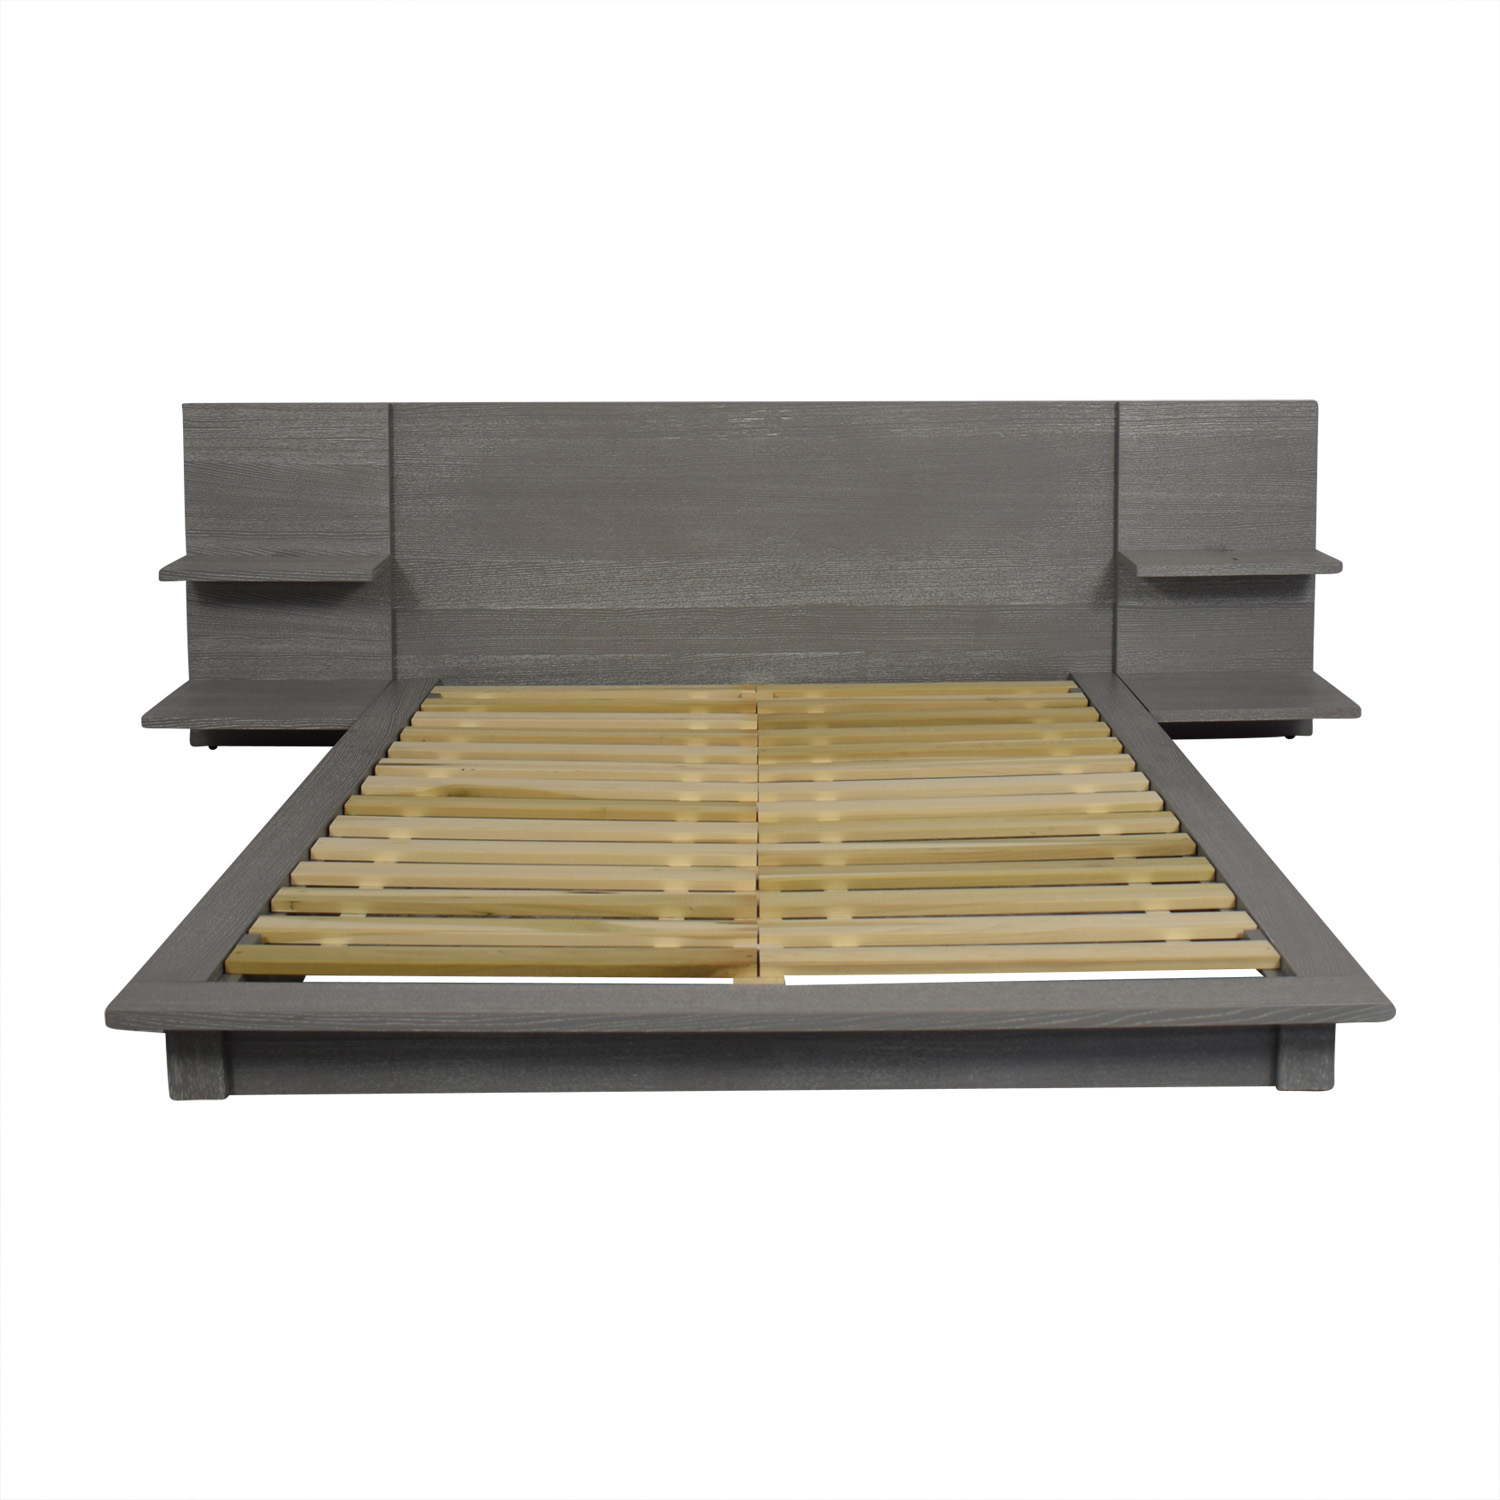 CB2 CB2 Andes Grey Queen Bed Frame dimensions